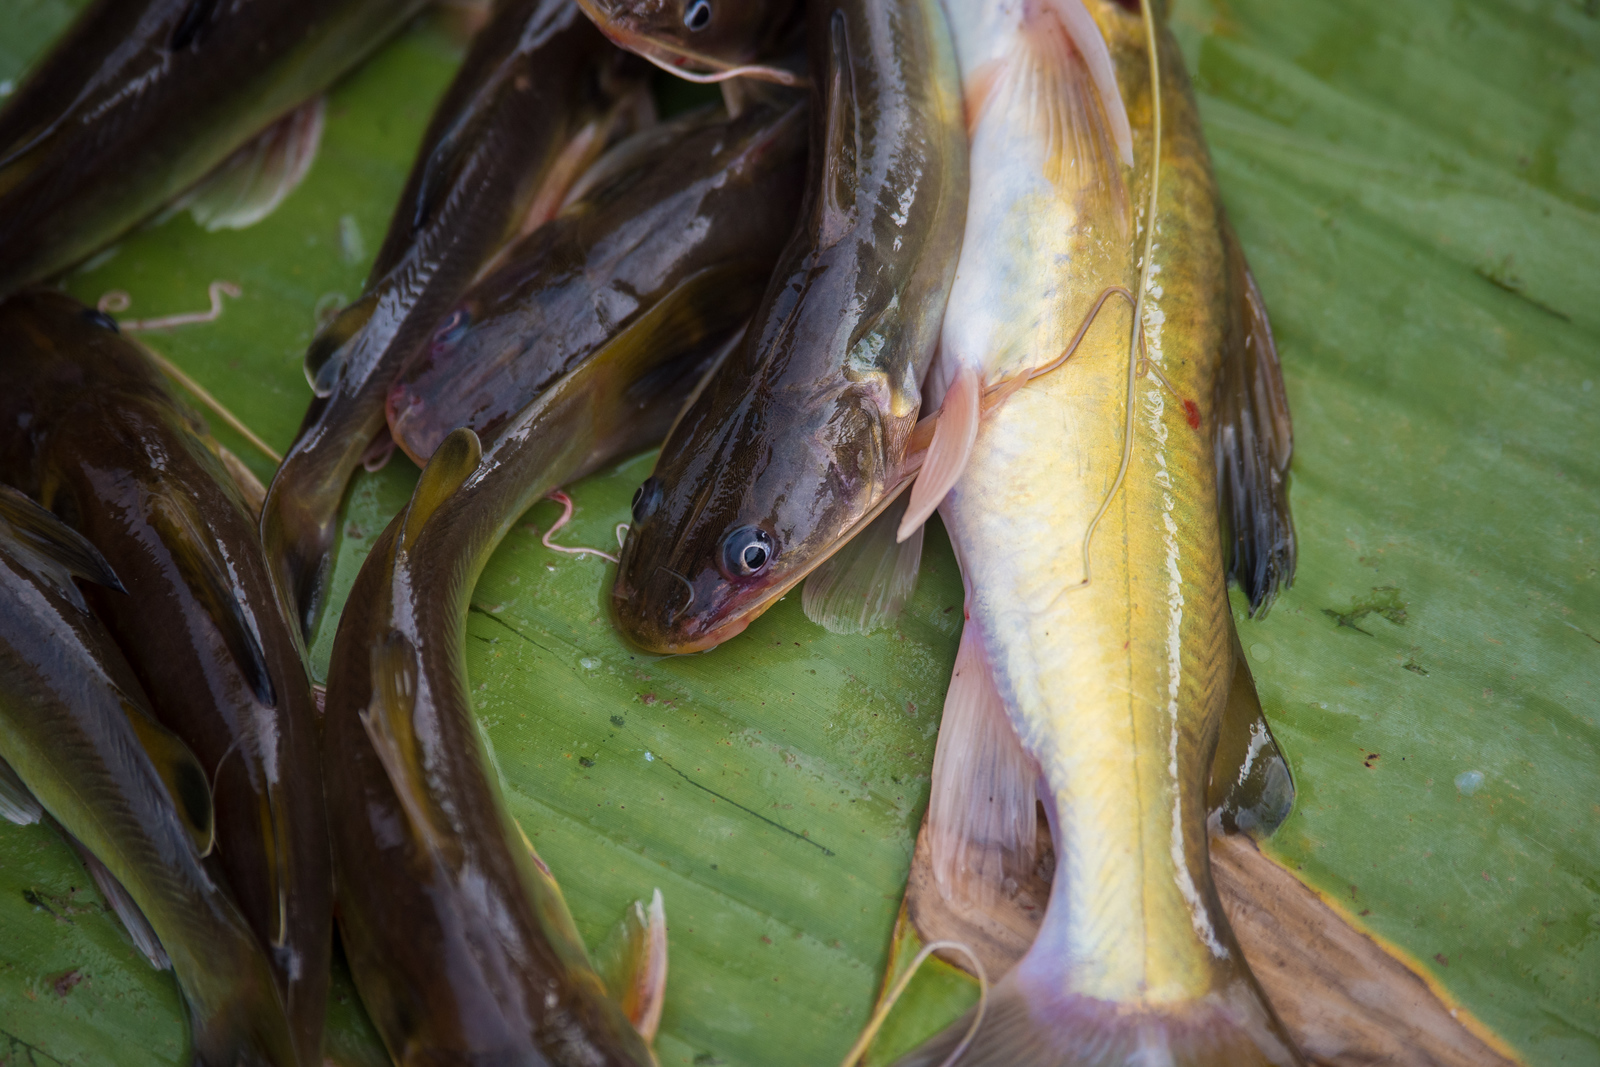 MeKong River Fish at the Morning Market in Luang Prabang